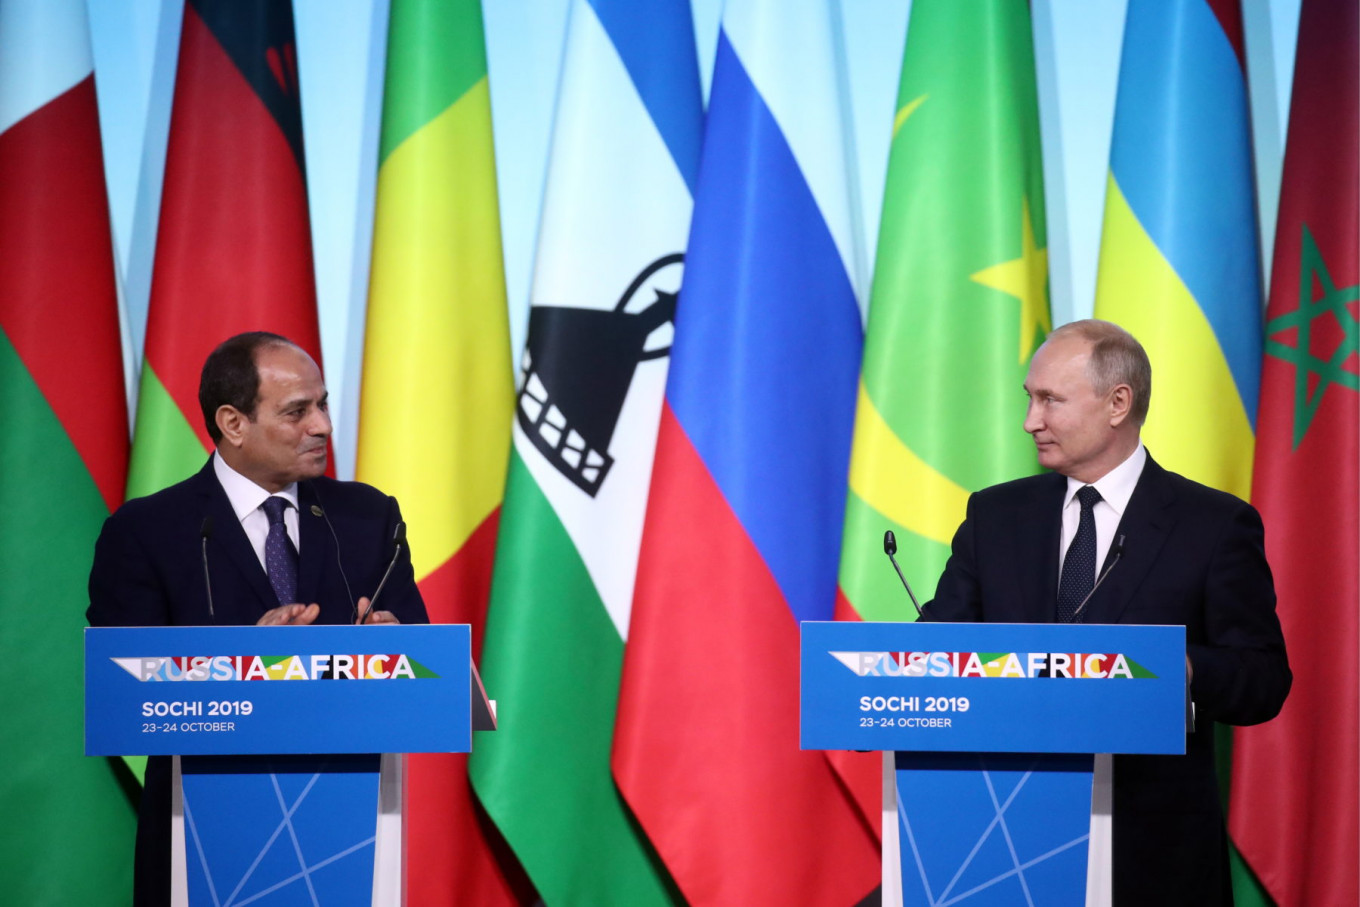 Egyptian President Abdel Fattah el-Sisi and Russia's President Vladimir Putin co-hosted the Russia-Africa Summit.				 				Valery Sharifulin / TASS Host Photo Agency